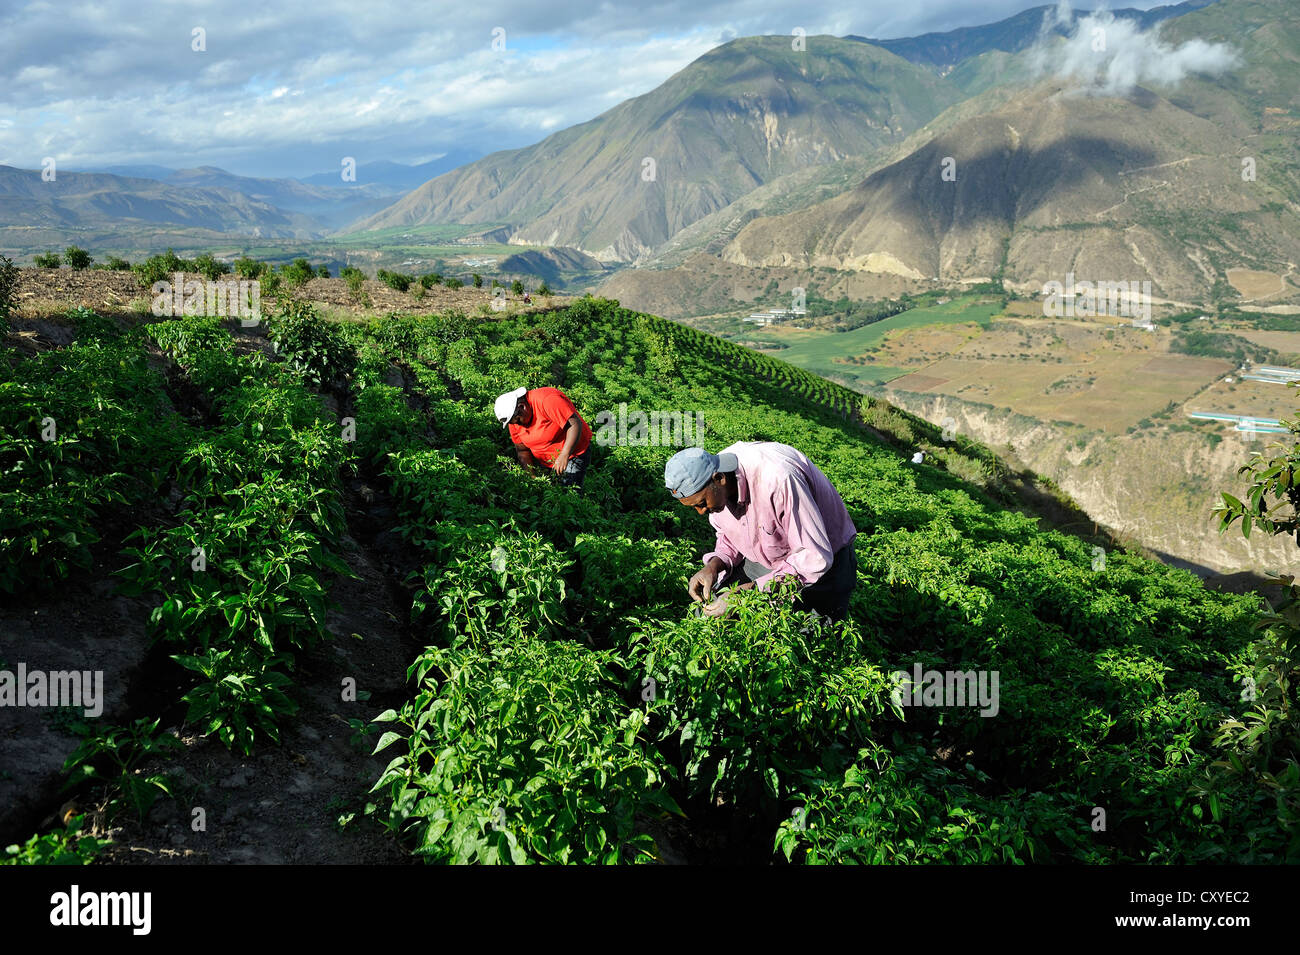 Farmers working on an irrigated field growing peppers (Capsicum annuum) in the Andean highlands, African-Ecuadorian - Stock Image